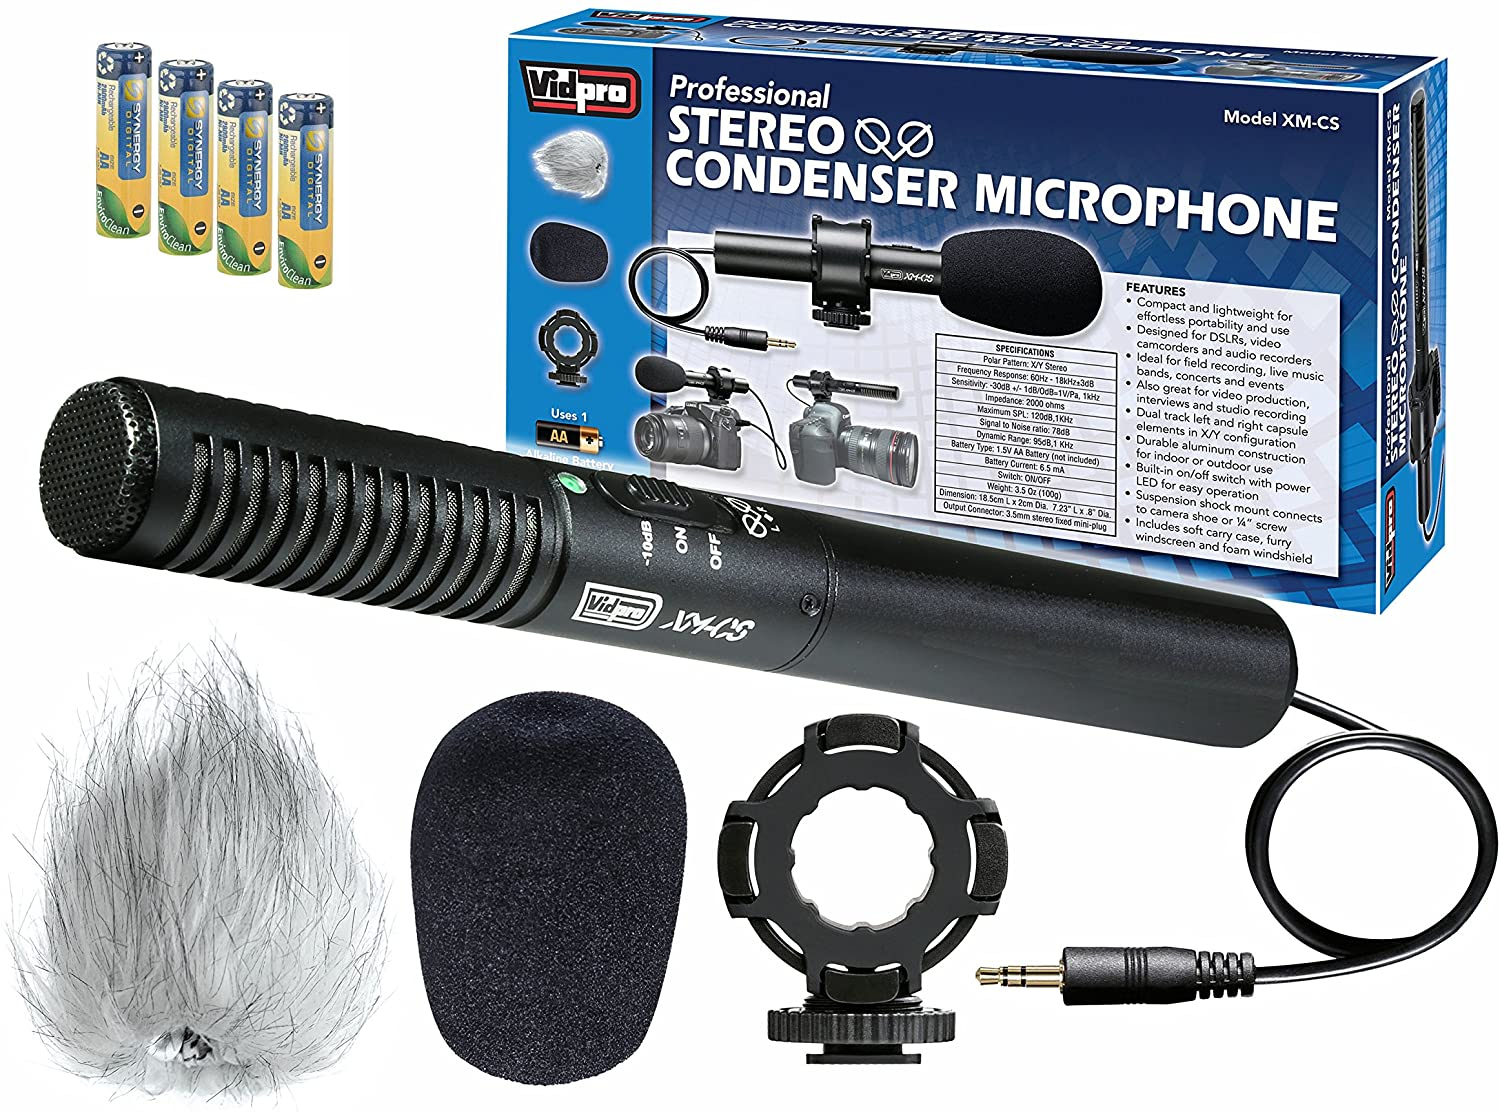 Canon ZR-10 Camcorder External Microphone Vidpro XM-CS Condenser Stereo XY Microphone Kit for DSLR's, Video camcorders and Audio recorders - with a Pack of 4 AA NiMH Rechargable Batteries - 2800mAh